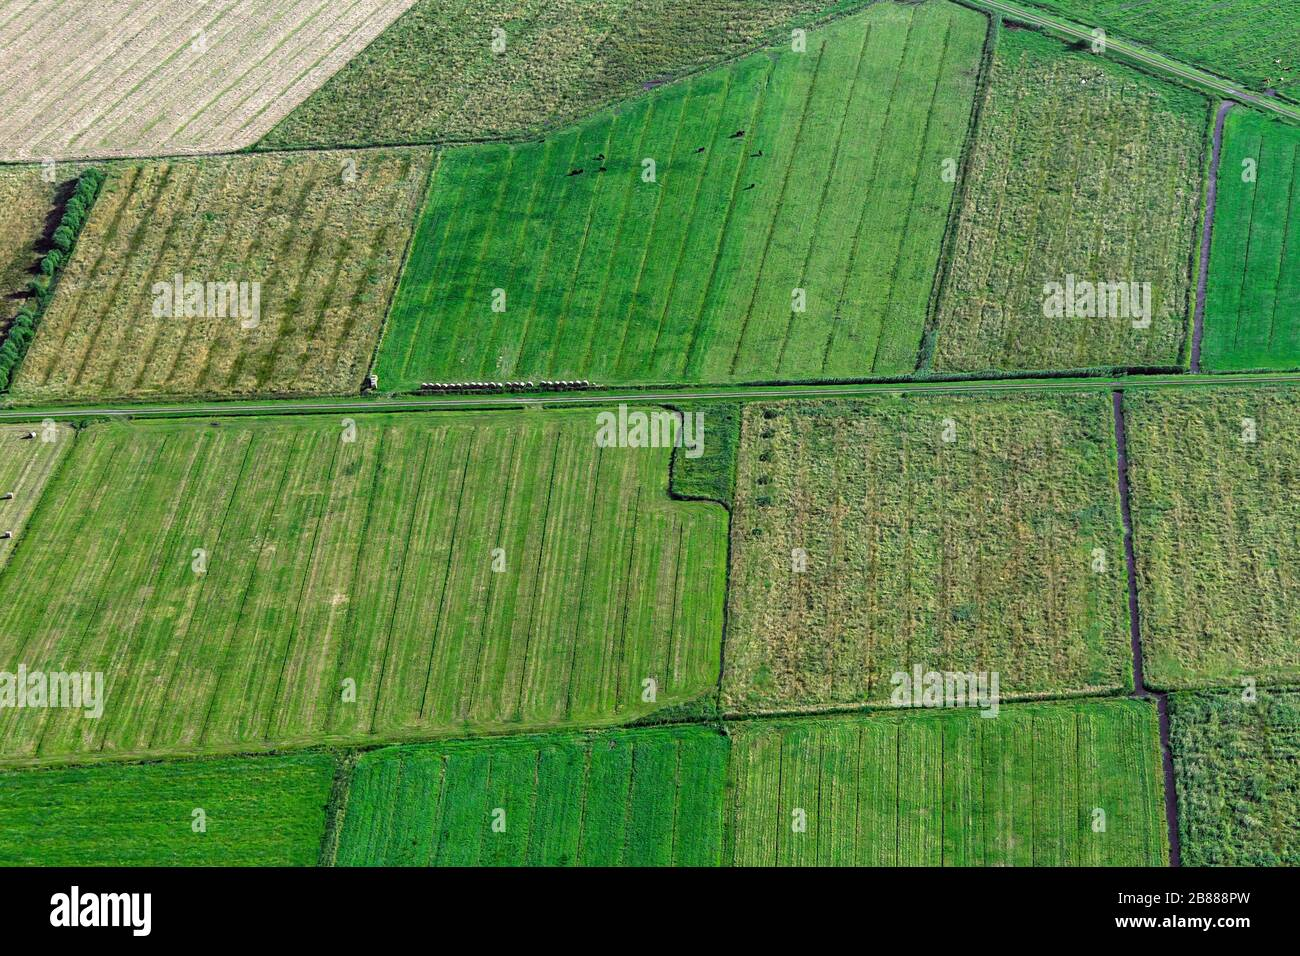 Aerial view over farmland showing tractor tracks and ditches in agricultural parcels / plots of land with meadows / grasslands in summer Stock Photo